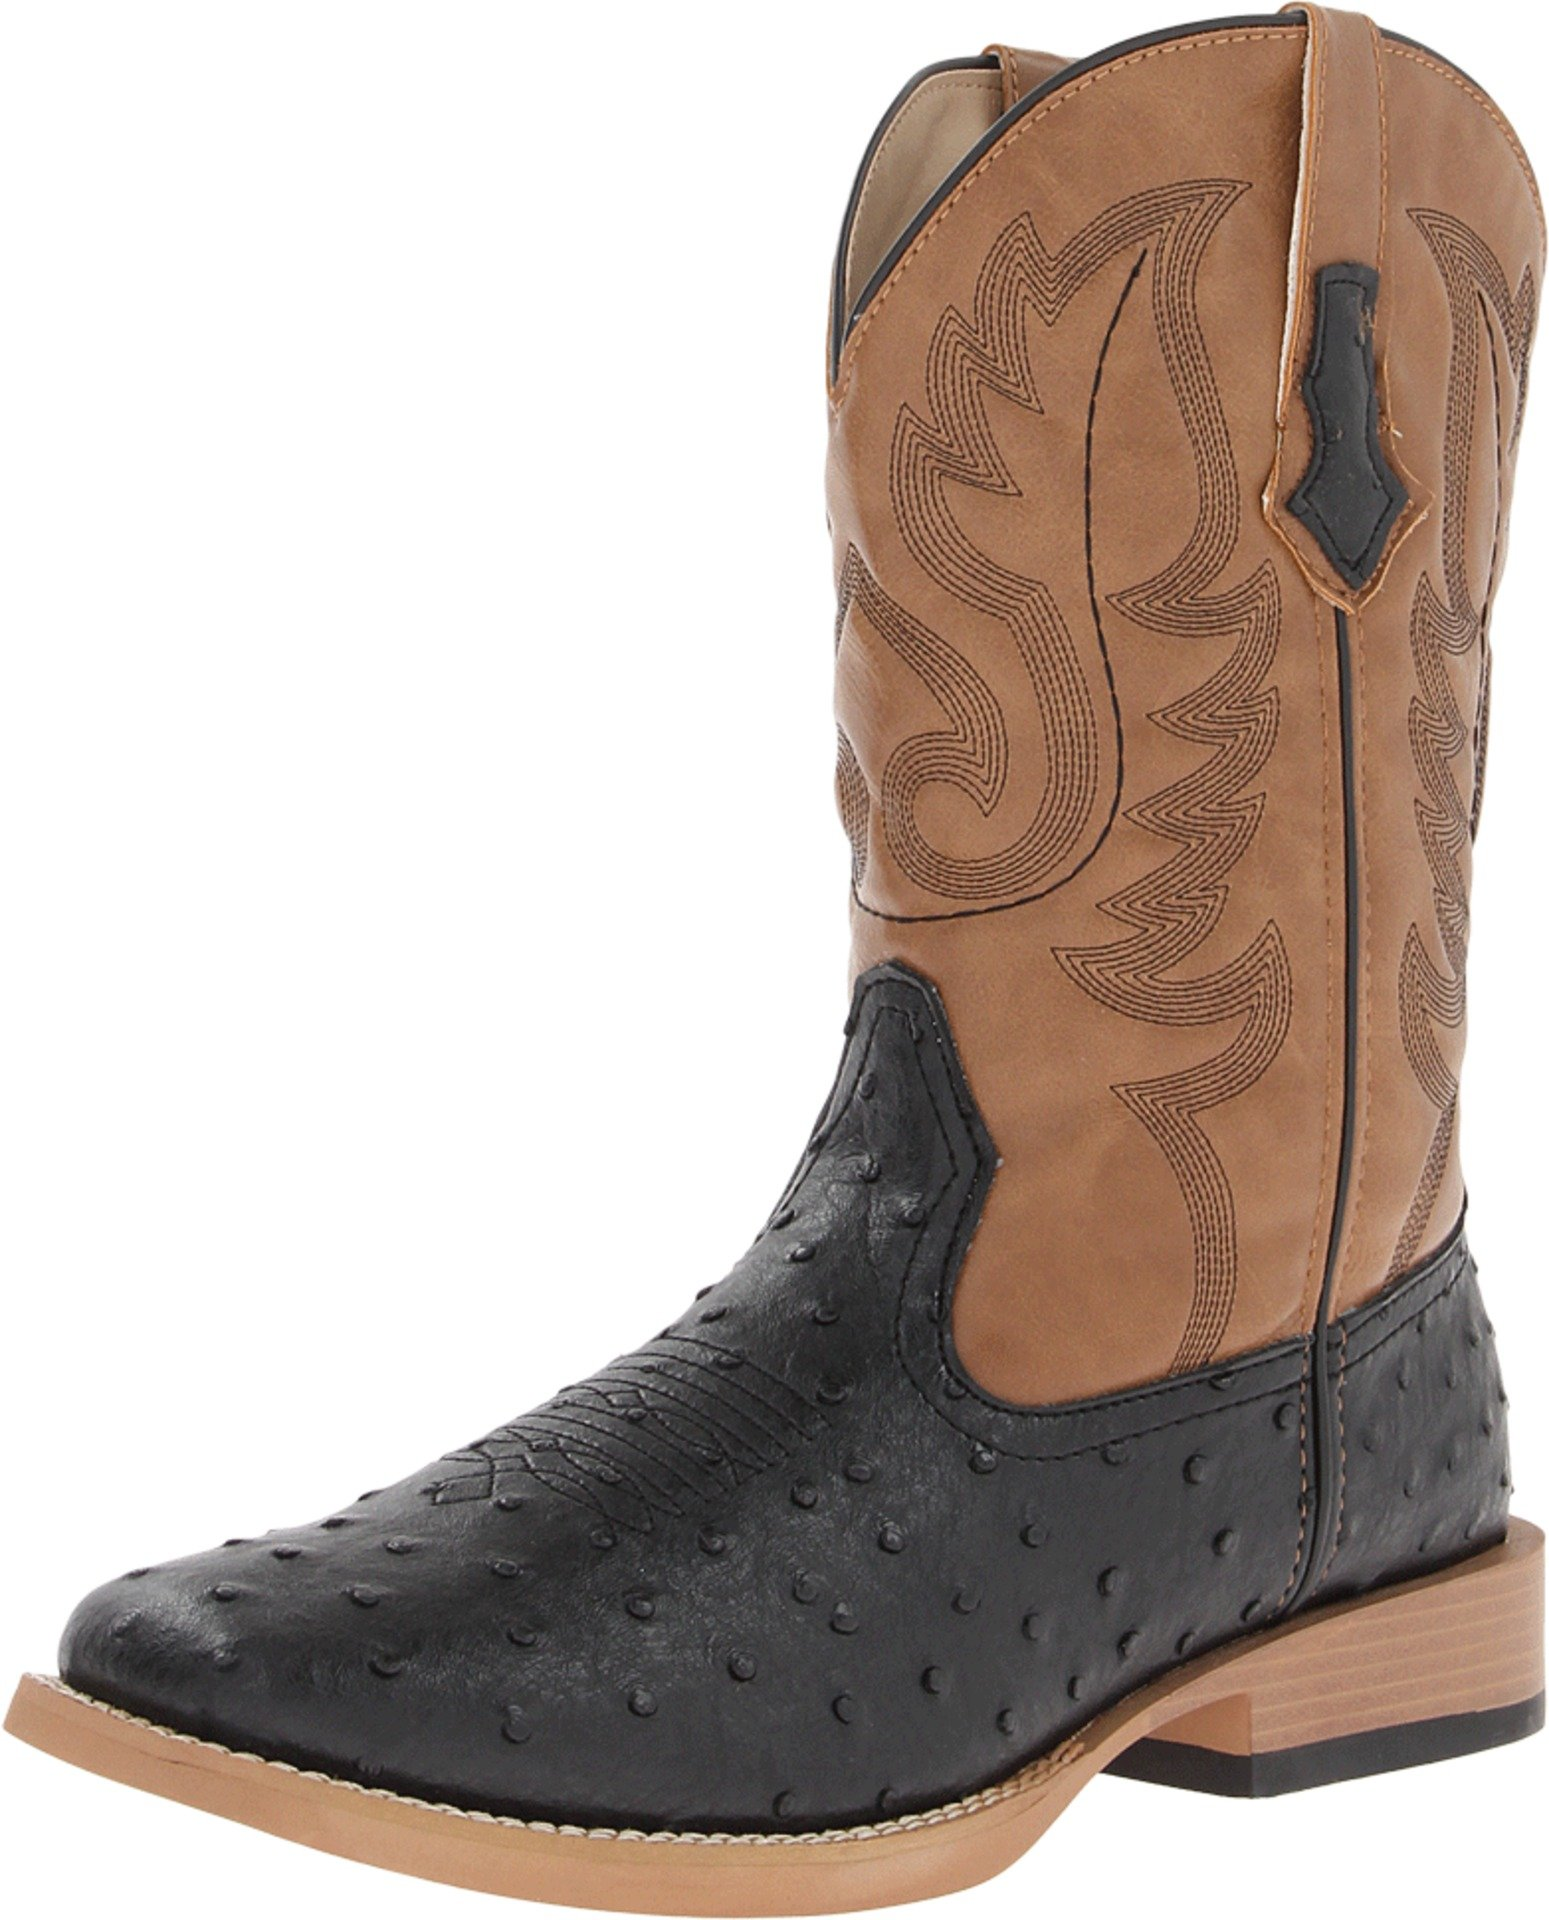 Roper Men's Ostrich Print Square Toe Cowboy Boot Black Faux Leather/Western Stitch 8.5 D - Medium by Roper